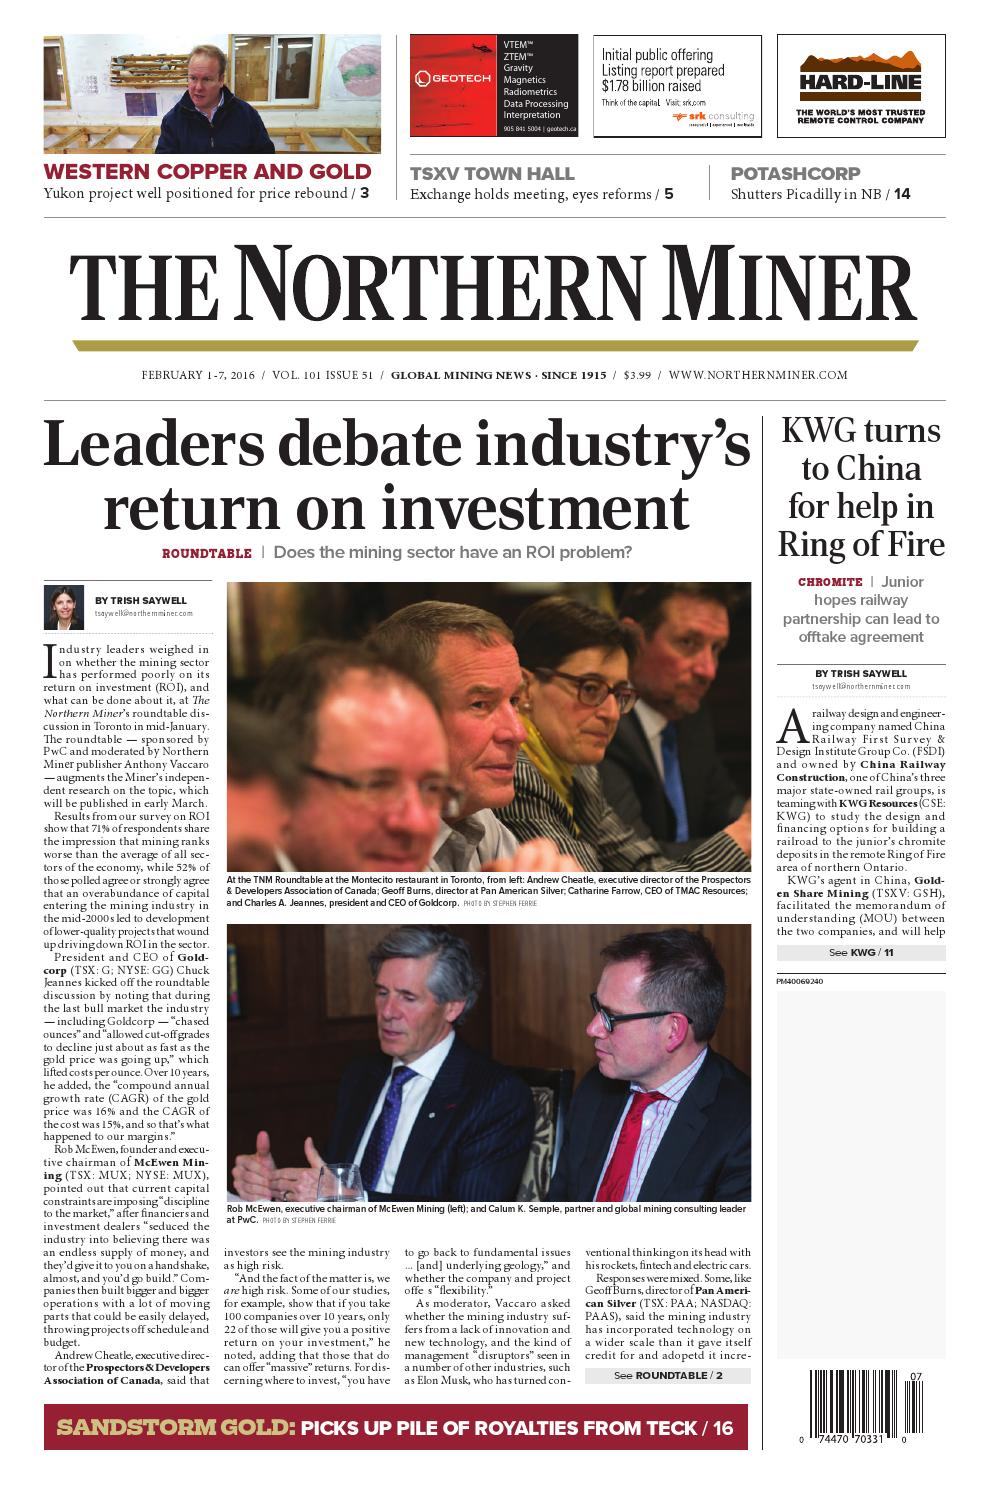 The Northern Miner February 1-7, 2016